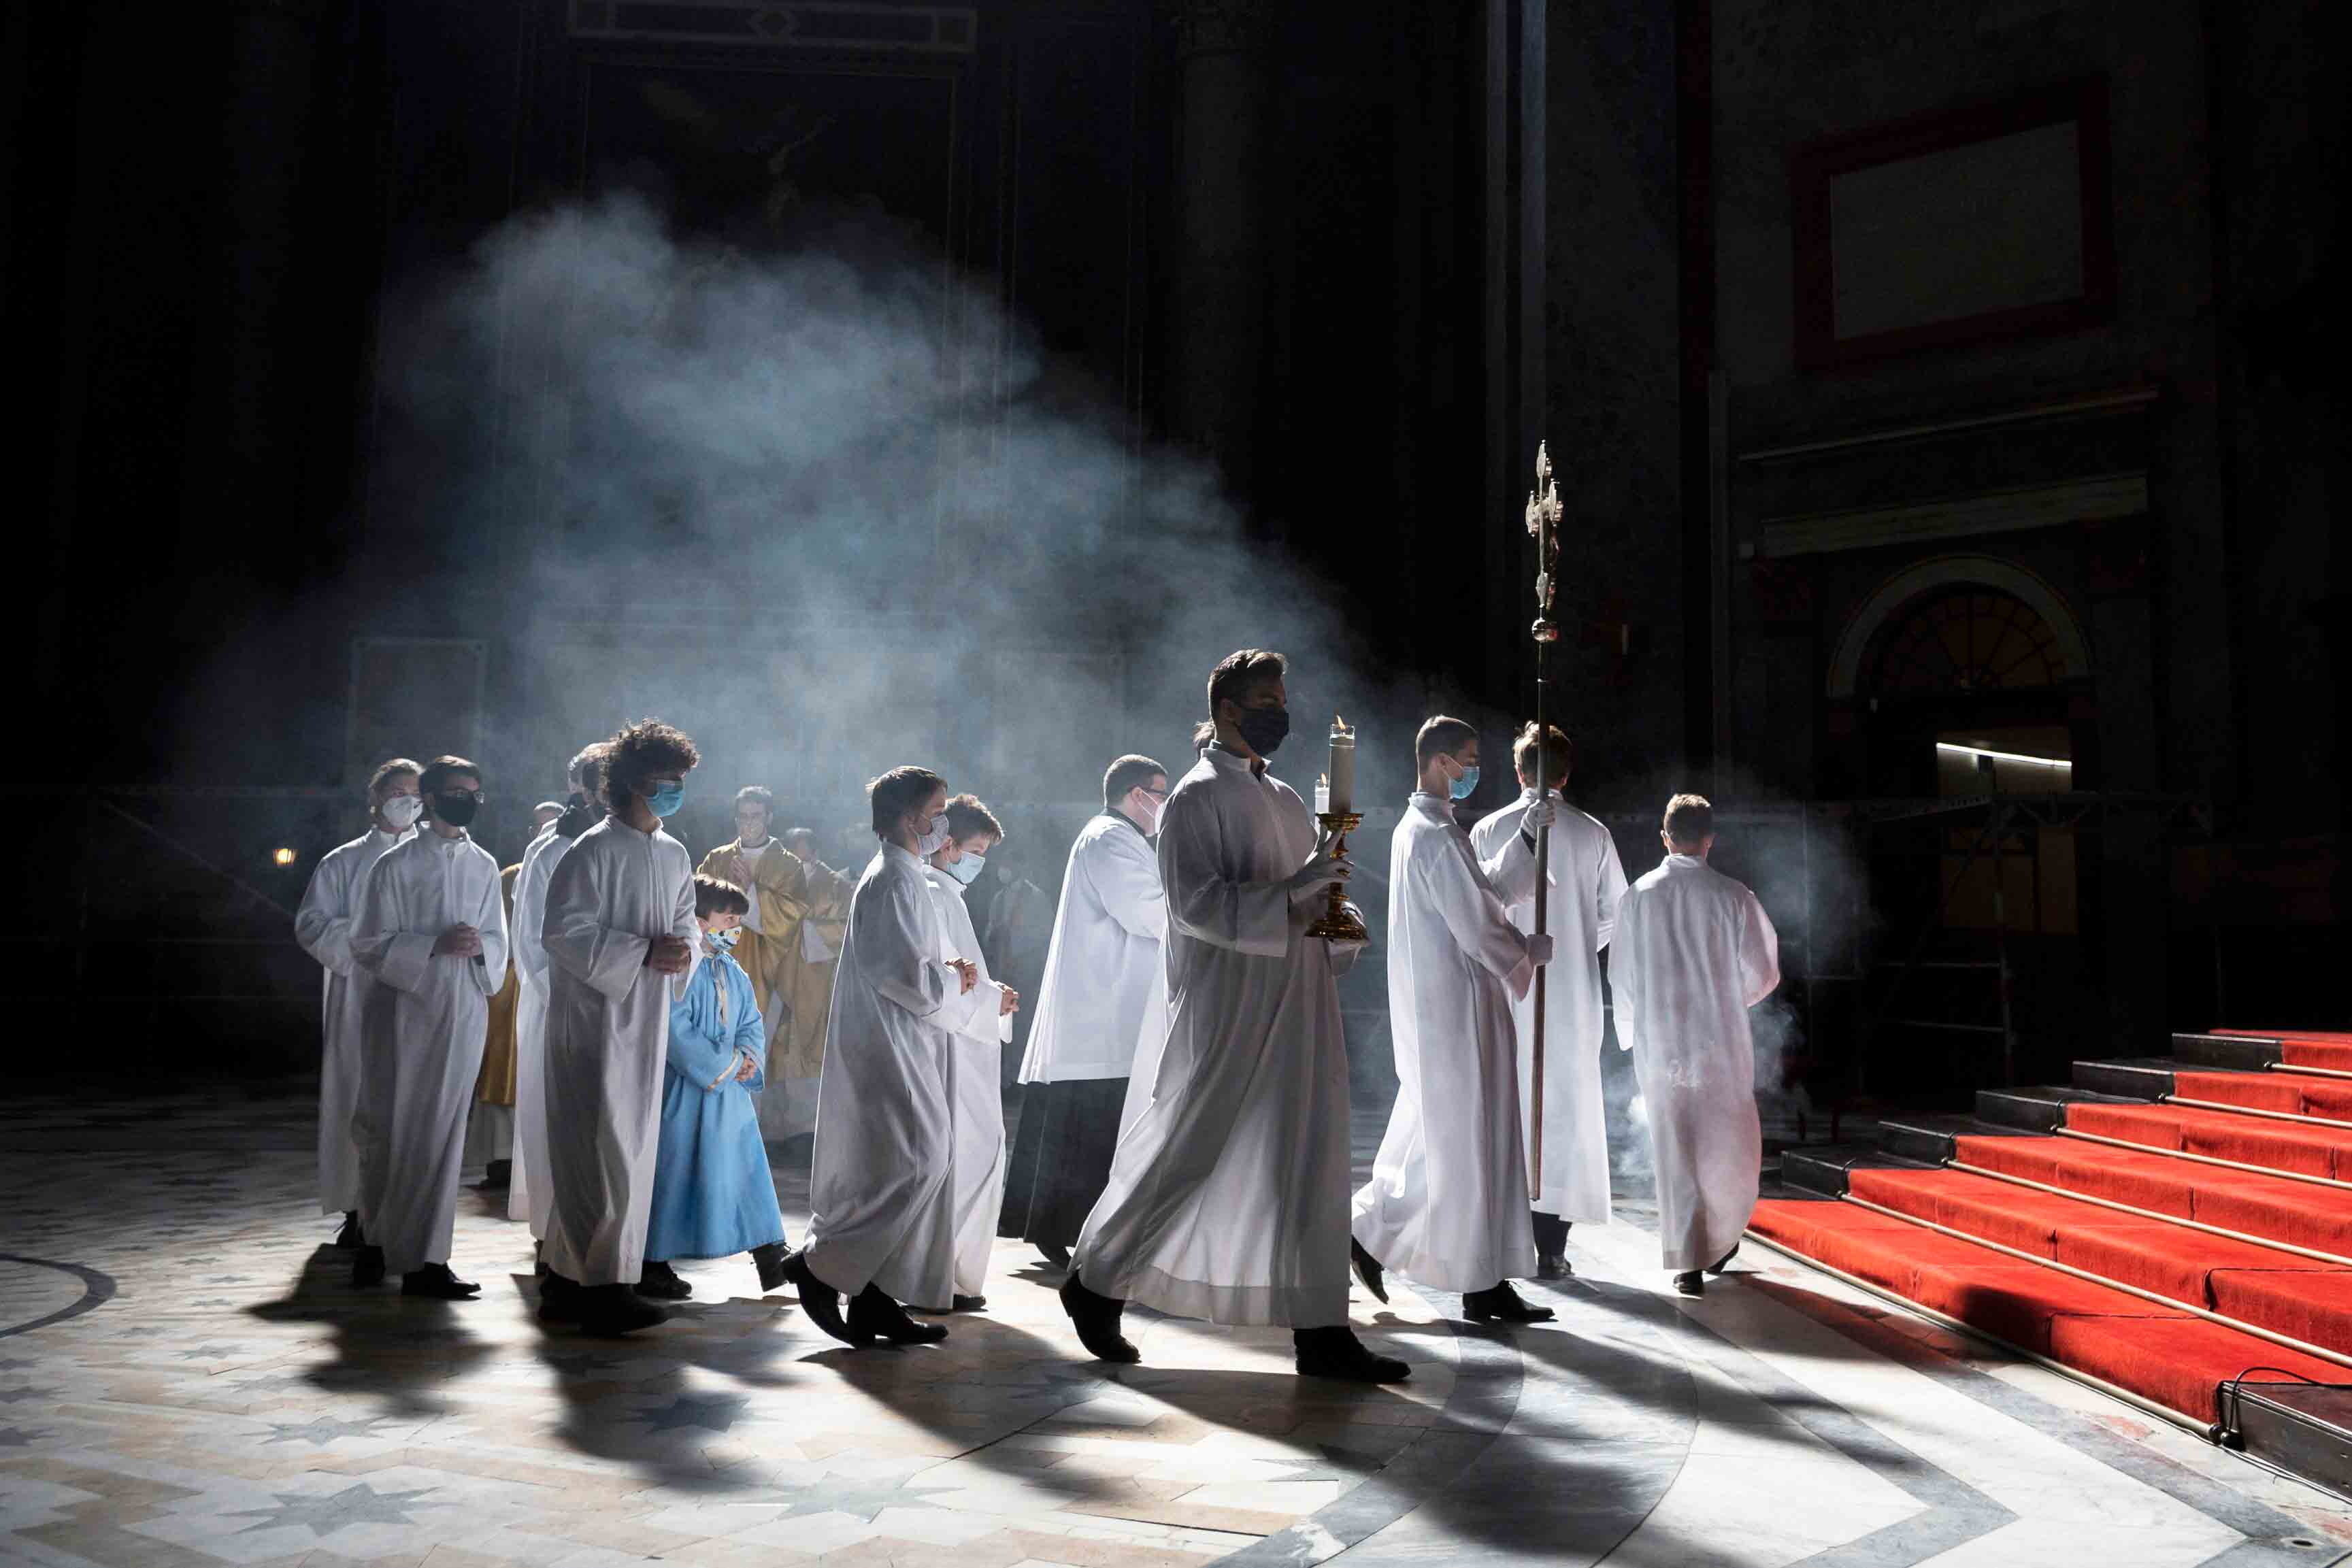 Clergyman and servers arrive for the Easter Sunday Mass celebrated by Primate of the Hungarian Catholic Church, Archbishop of Esztergom-Budapest, Cardinal Peter Erdo in the Esztergom Basilica in the City of Esztergom, Hungary, Sunday, April 4, 2021